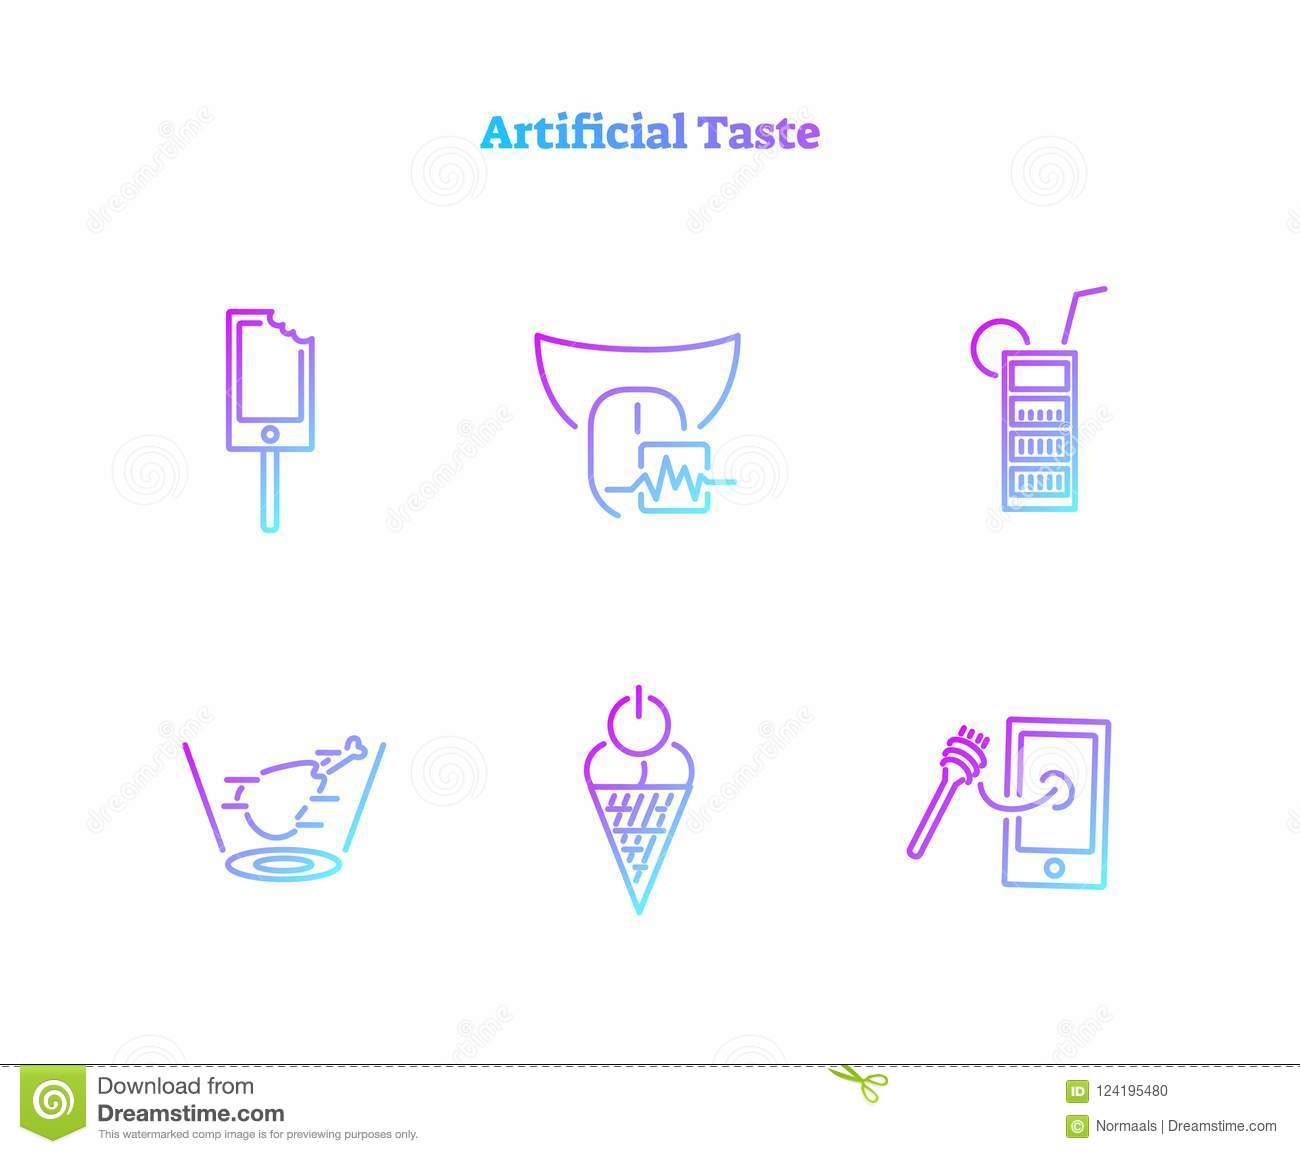 Artificial taste concept icons collection. Virtually generated digital food biochemical technology symbol set.